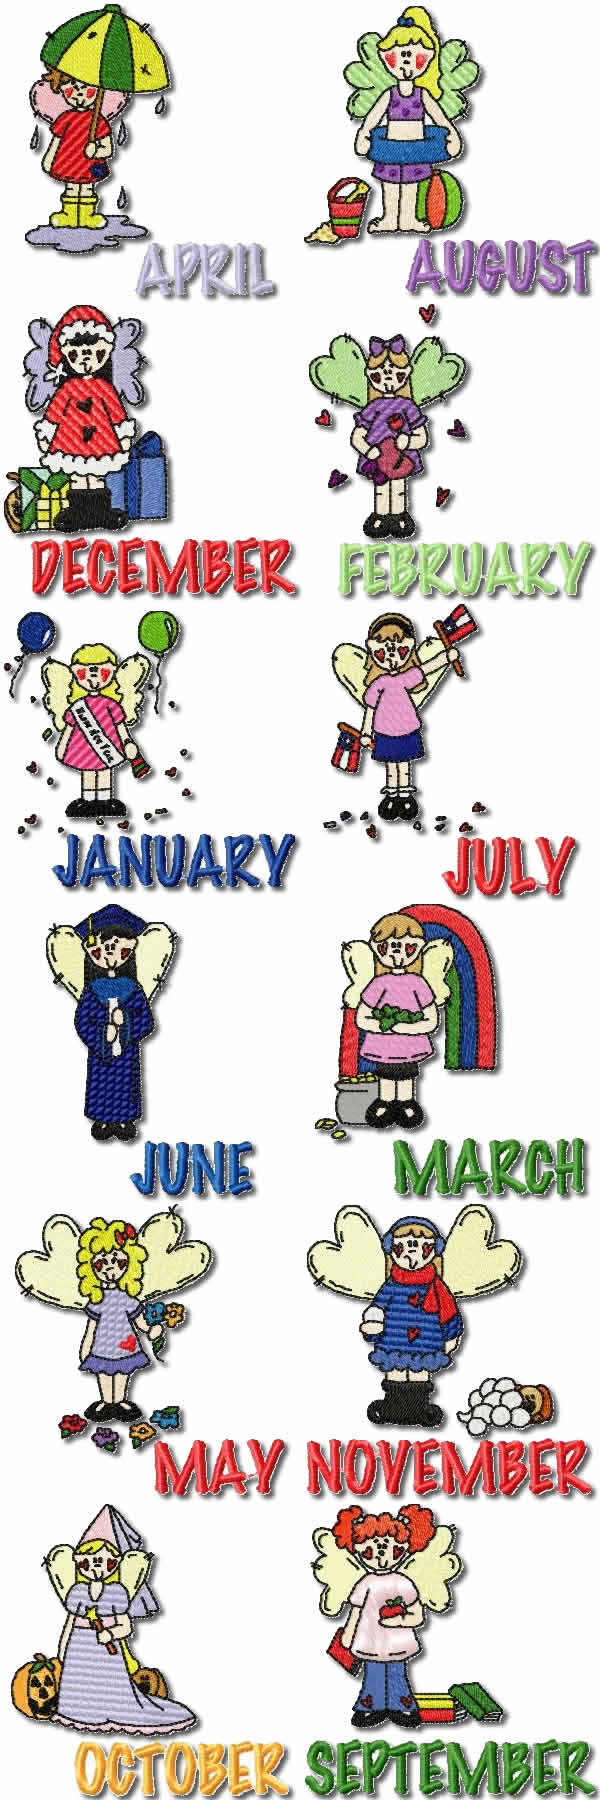 Set calendar months embroidery design images frompo